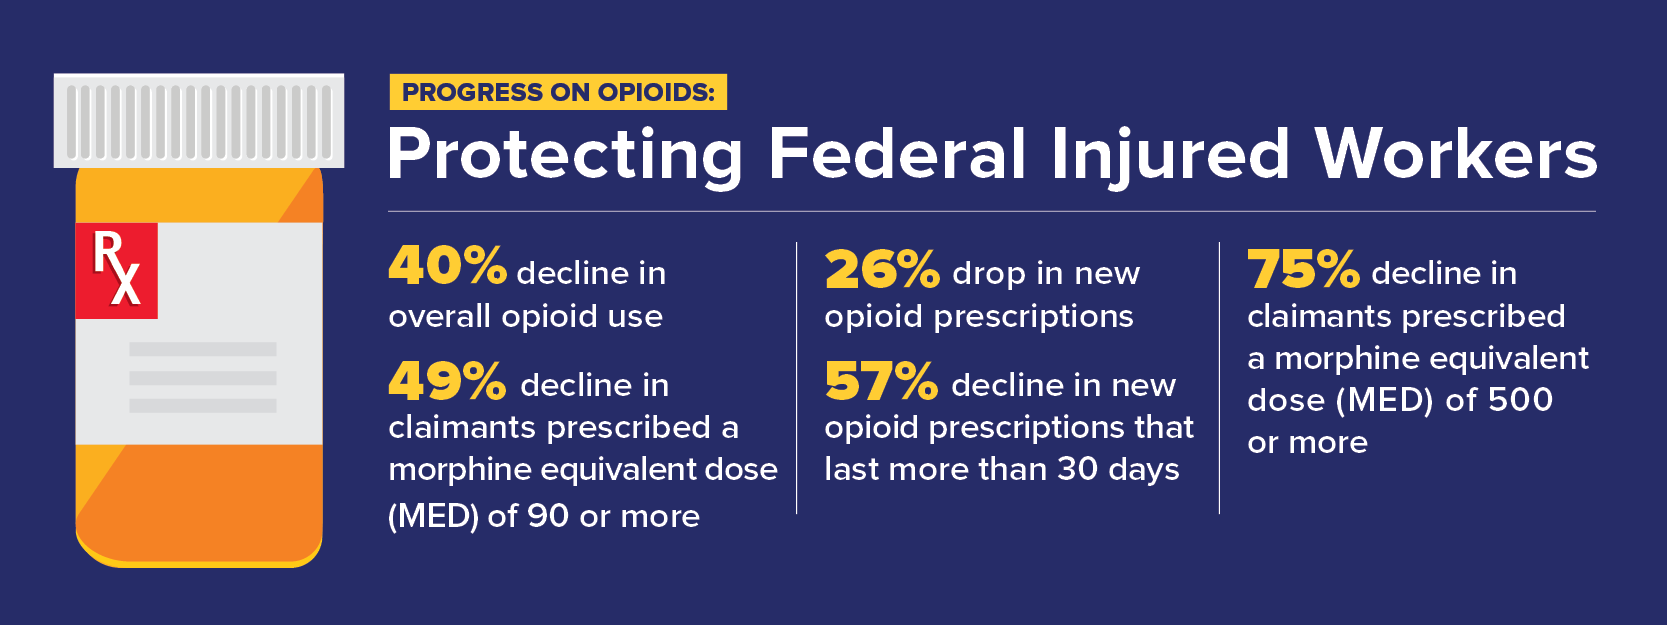 Infographic showing progress on protecting federal injured workers